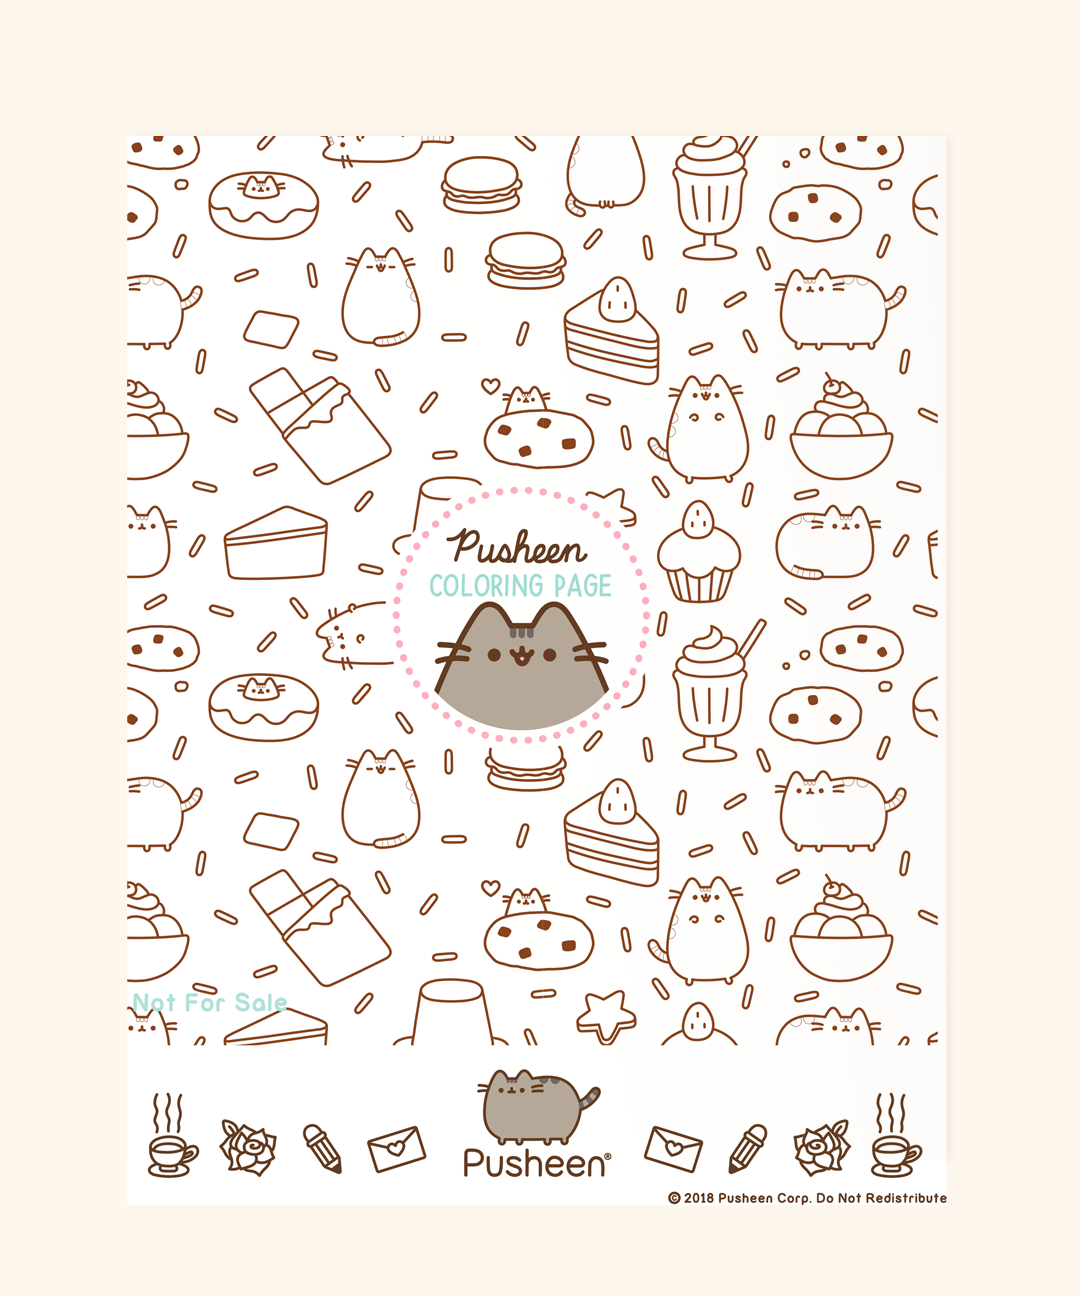 Printable Pusheen Coloring Page